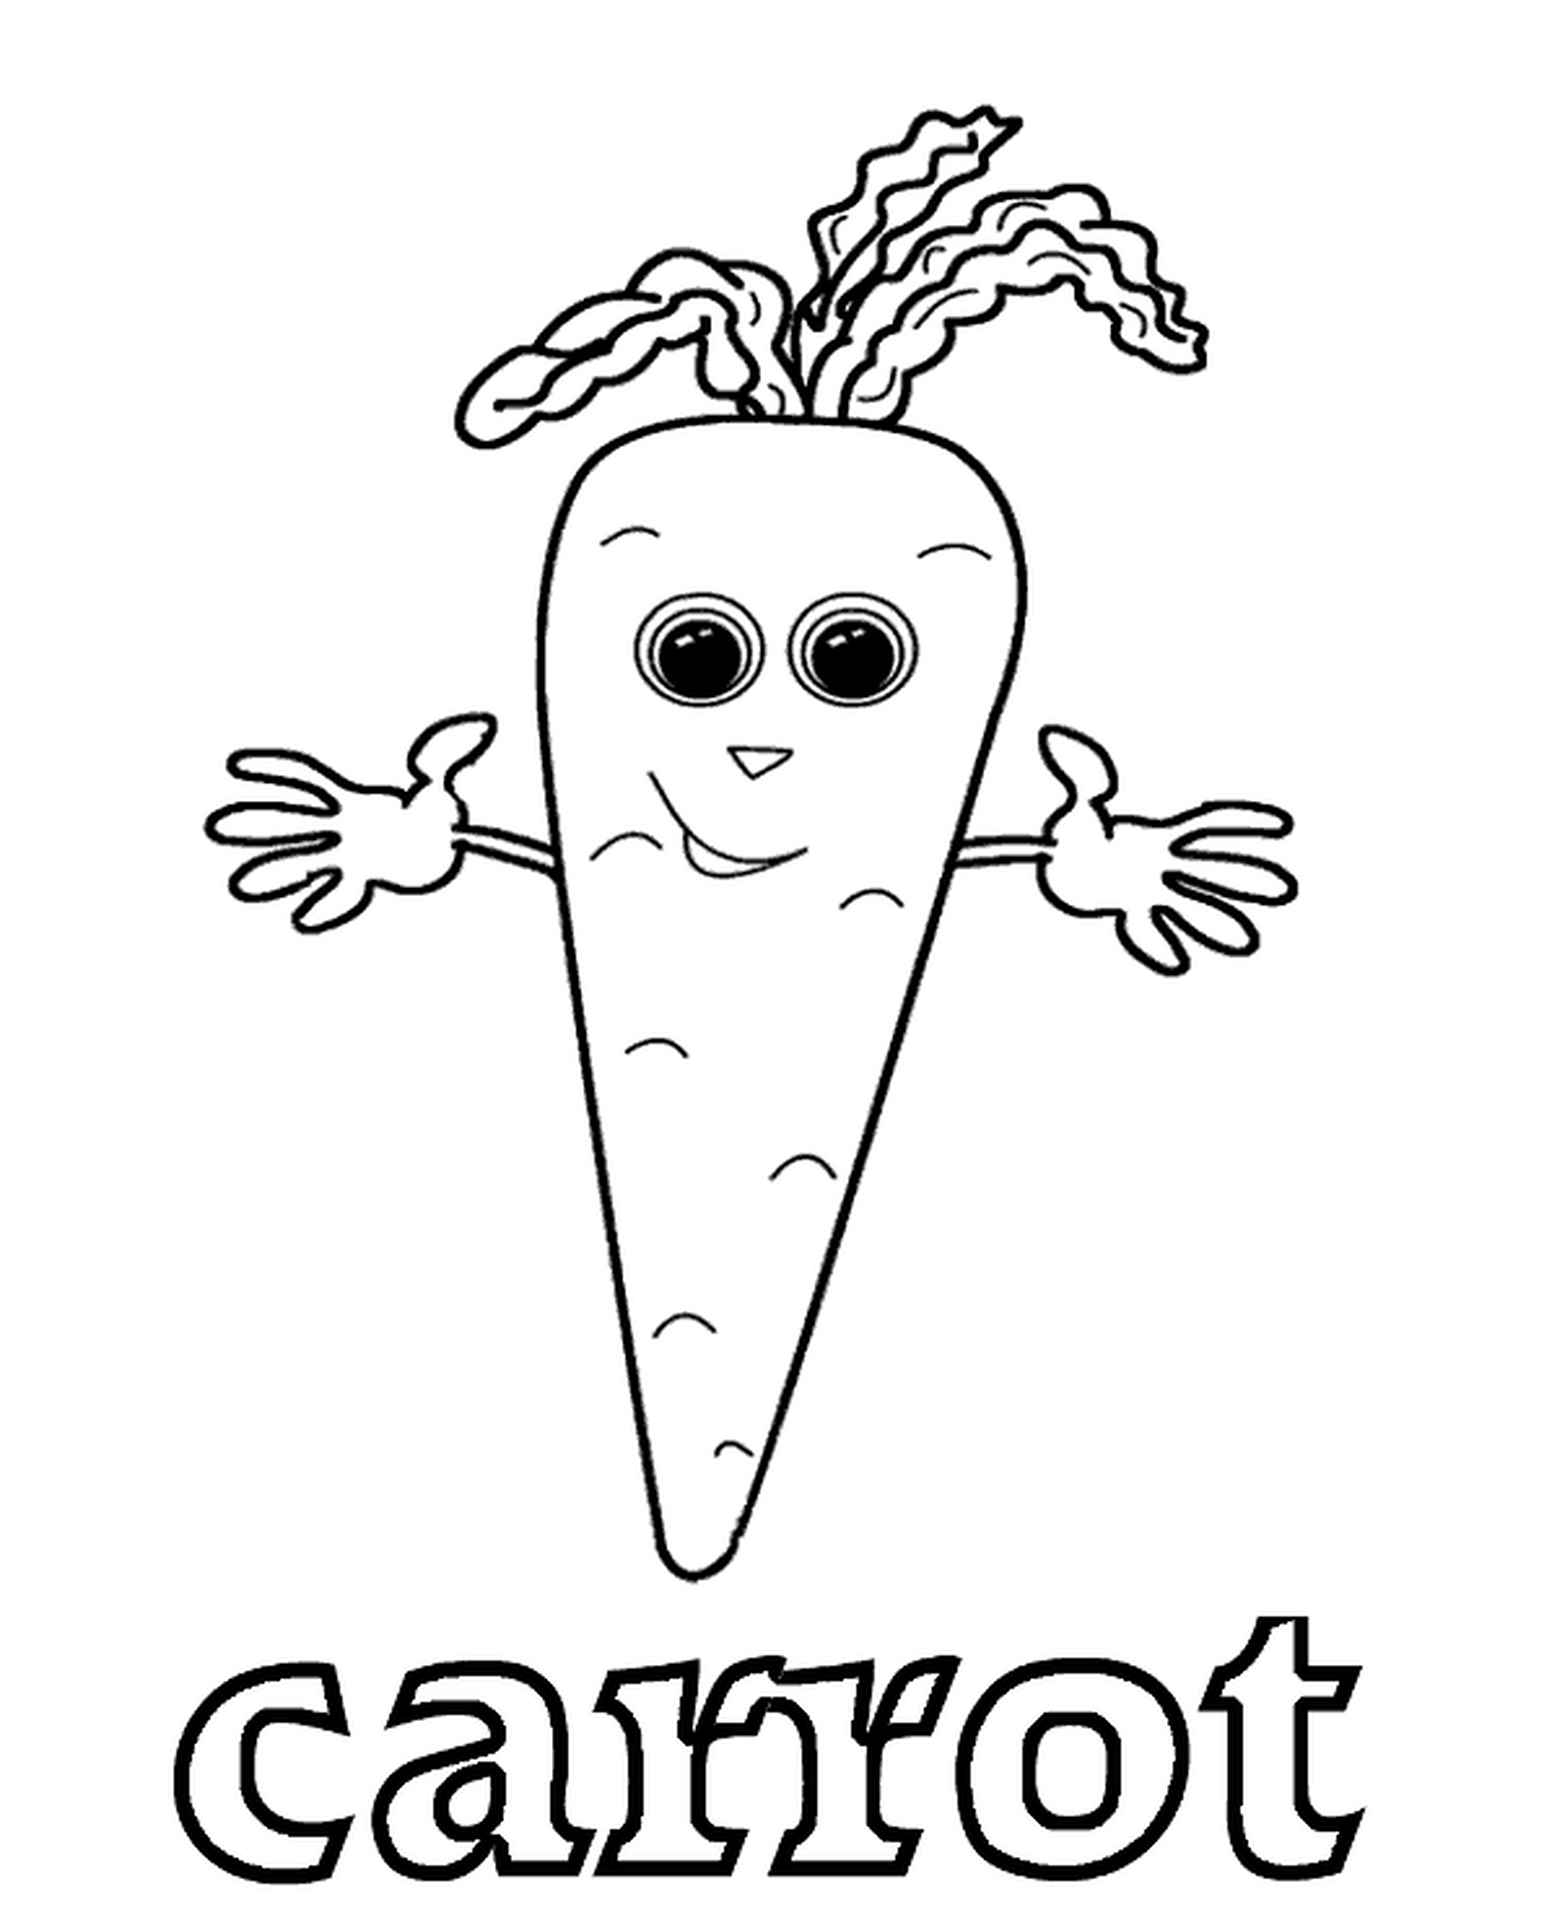 Carrot Trying To Hug You Coloring Page